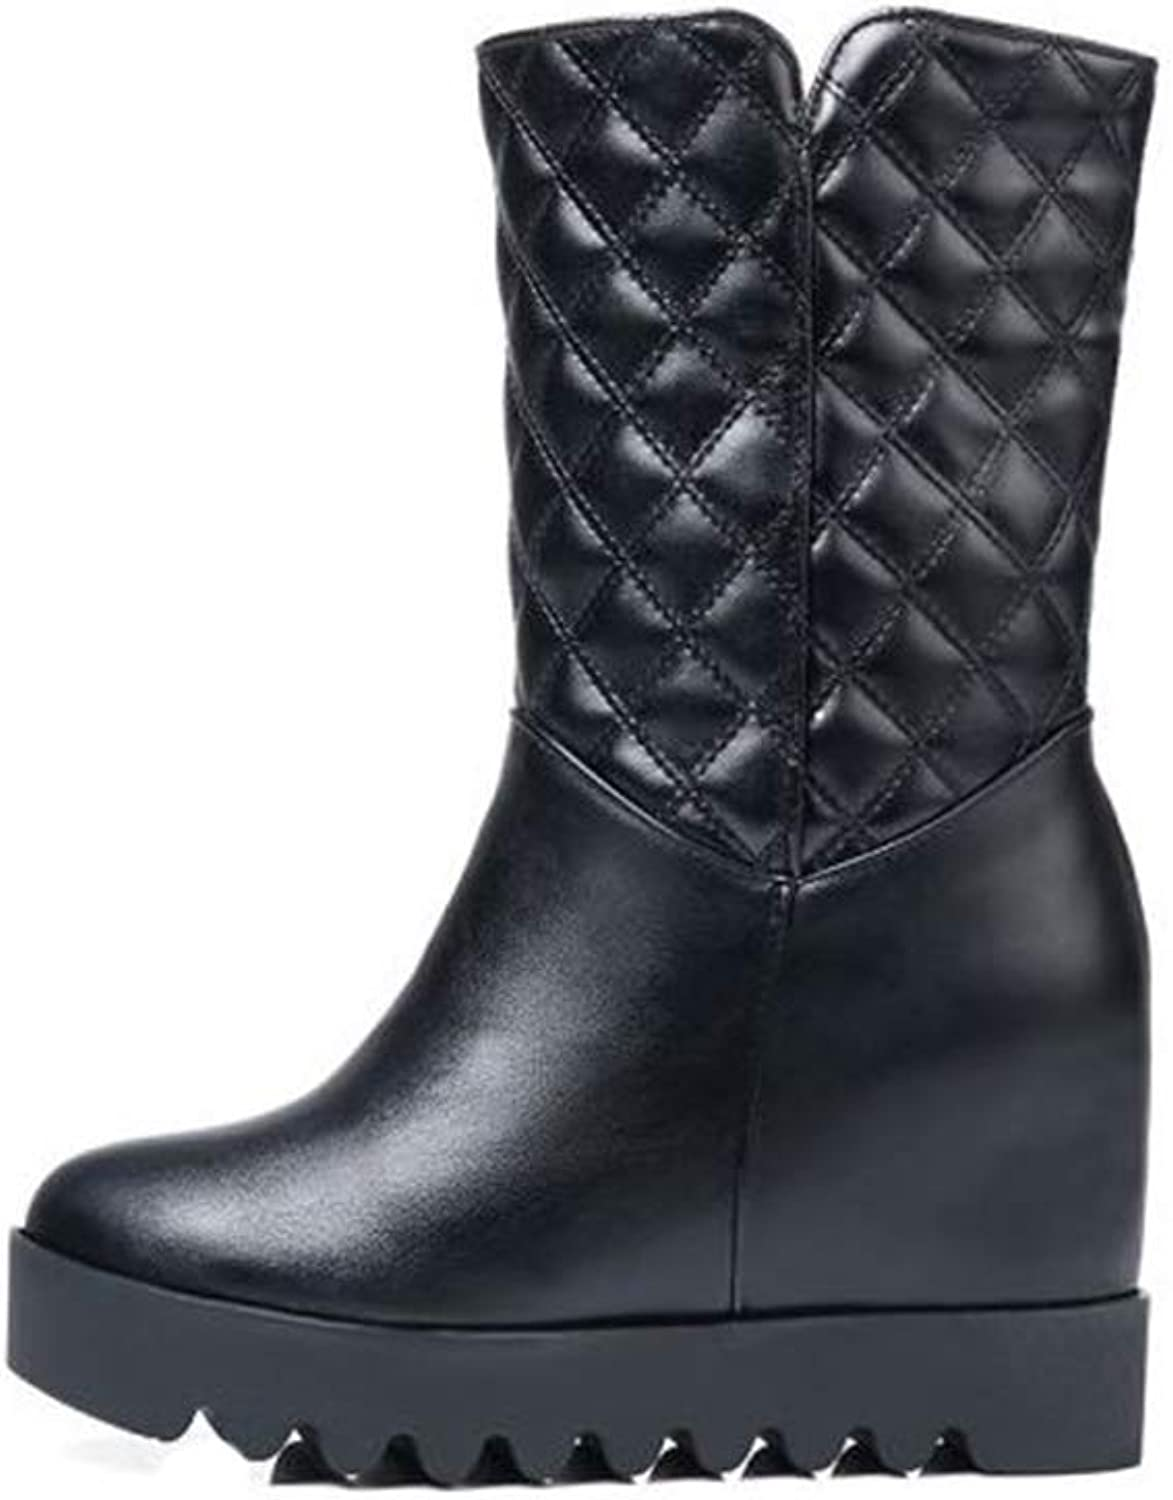 CHENSF Women's Winter Snow Increased Boot